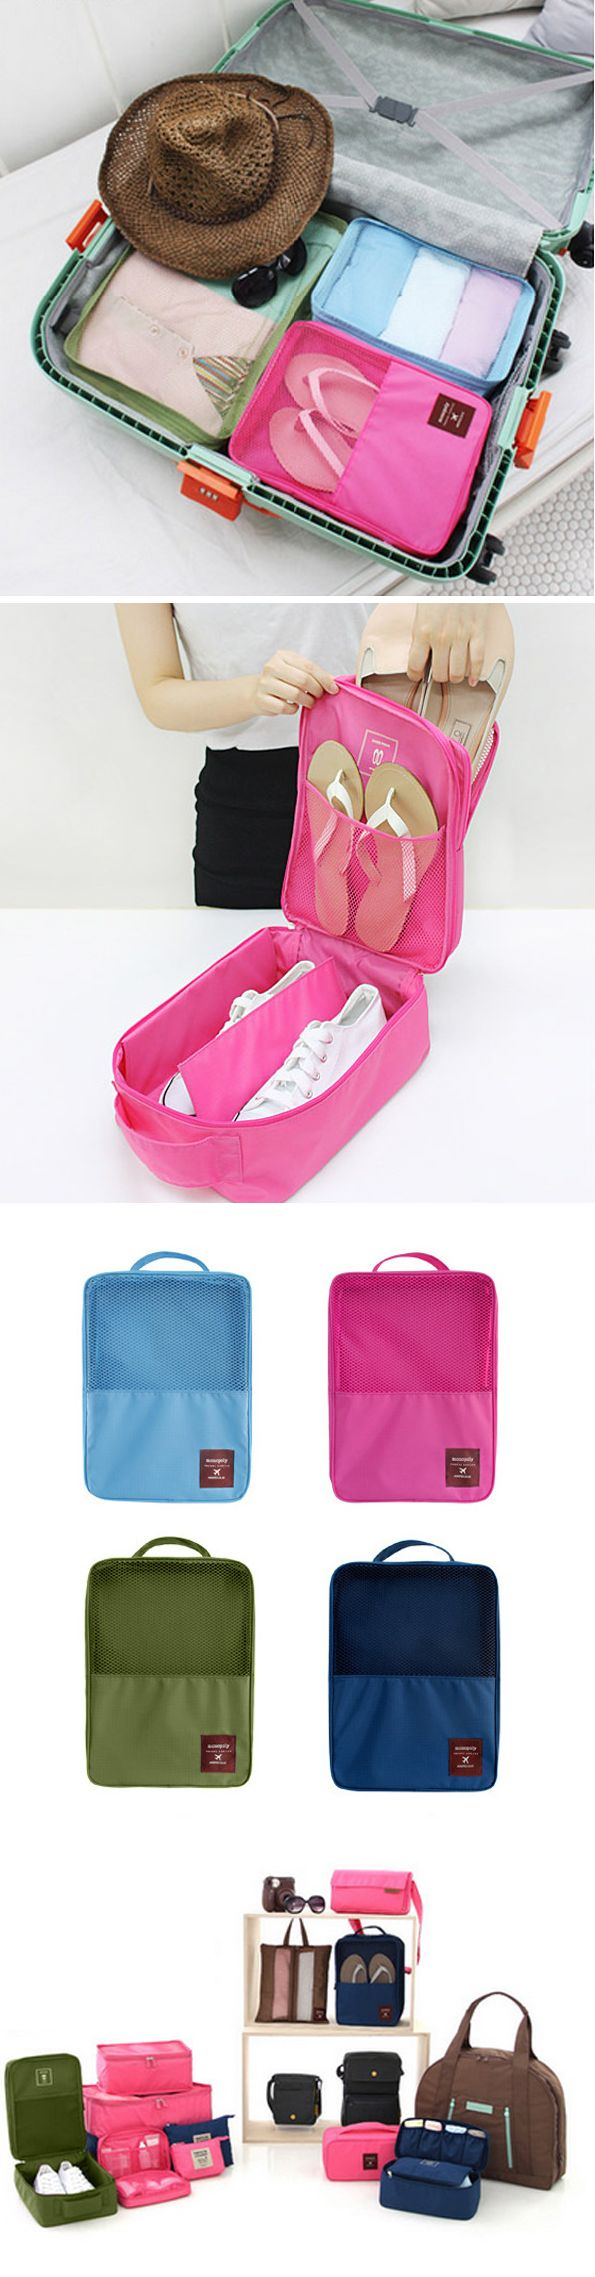 US$6.99 3 layers Shoes Bag Portable Waterproof Travel Bag Nylon Cosmetic Mackup Organizer Storage Container ✈✈✈ Here is your chance to win a Free International Roundtrip Ticket to anywhere in the world **GIVEAWAY** ✈✈✈ https://thedecisionmoment.com/free-roundtrip-tickets-giveaway/